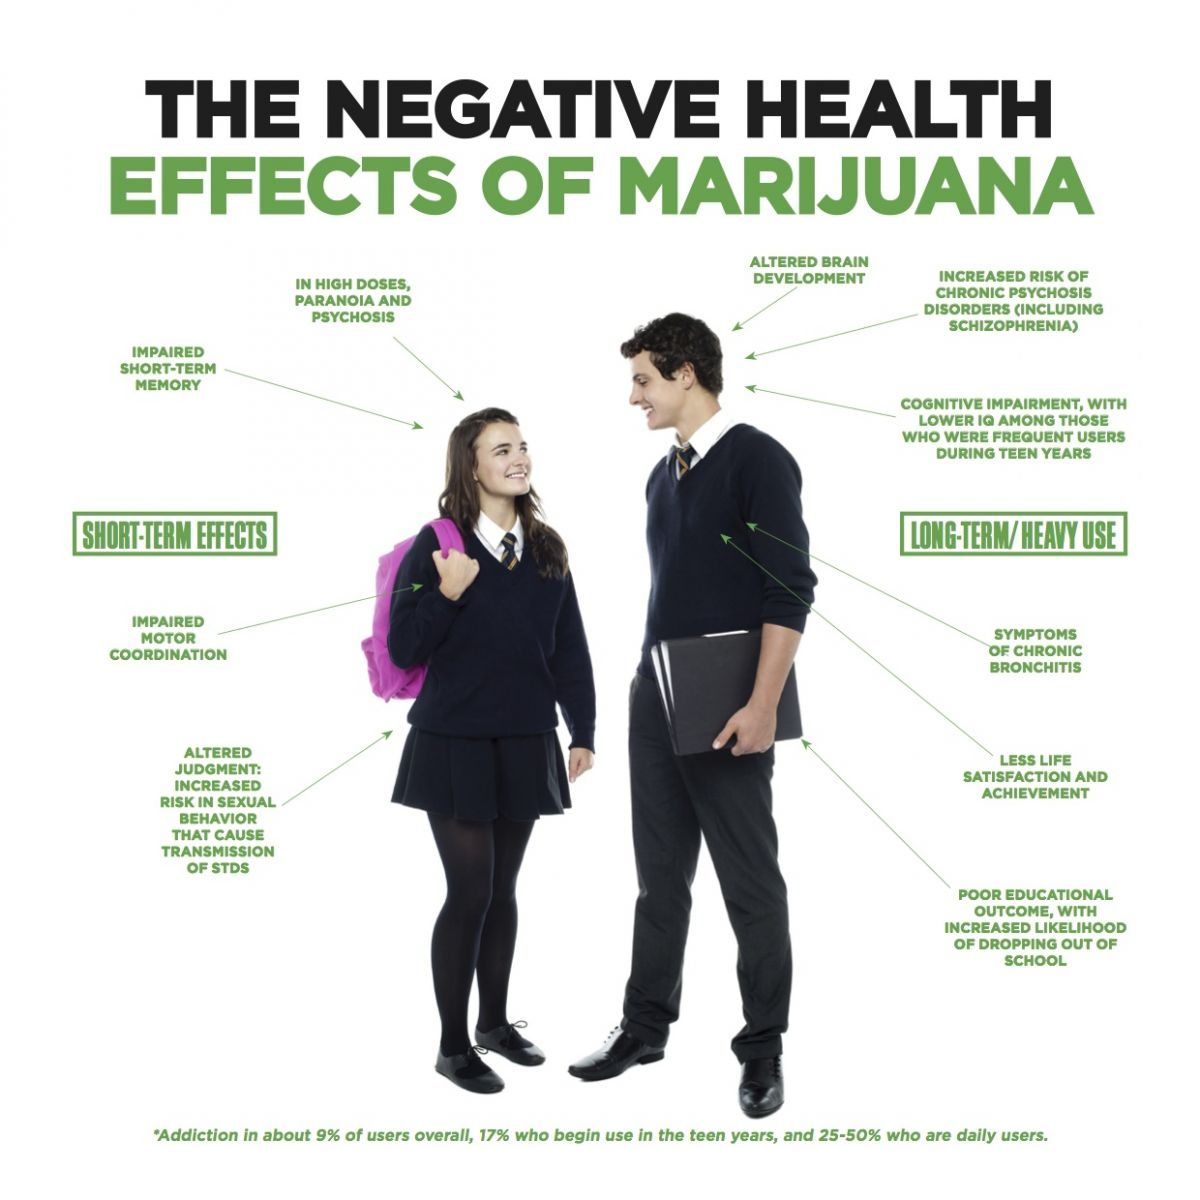 harmful effects of marijuana essay  essay on negative effects of marijuana essay outline